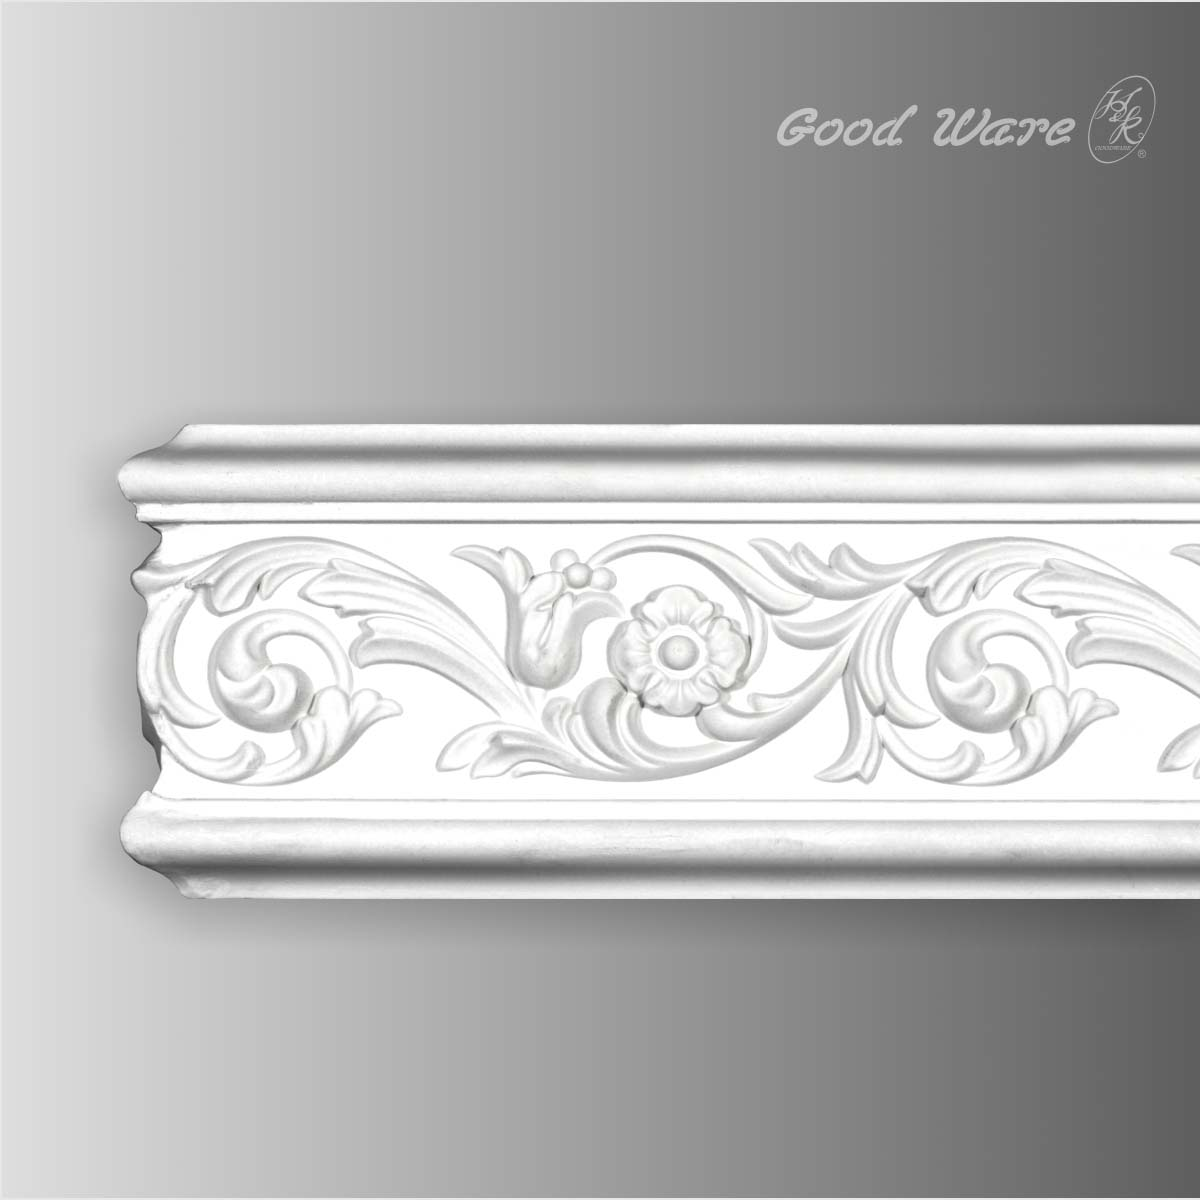 Polyurethane decorative wall chair rail molding